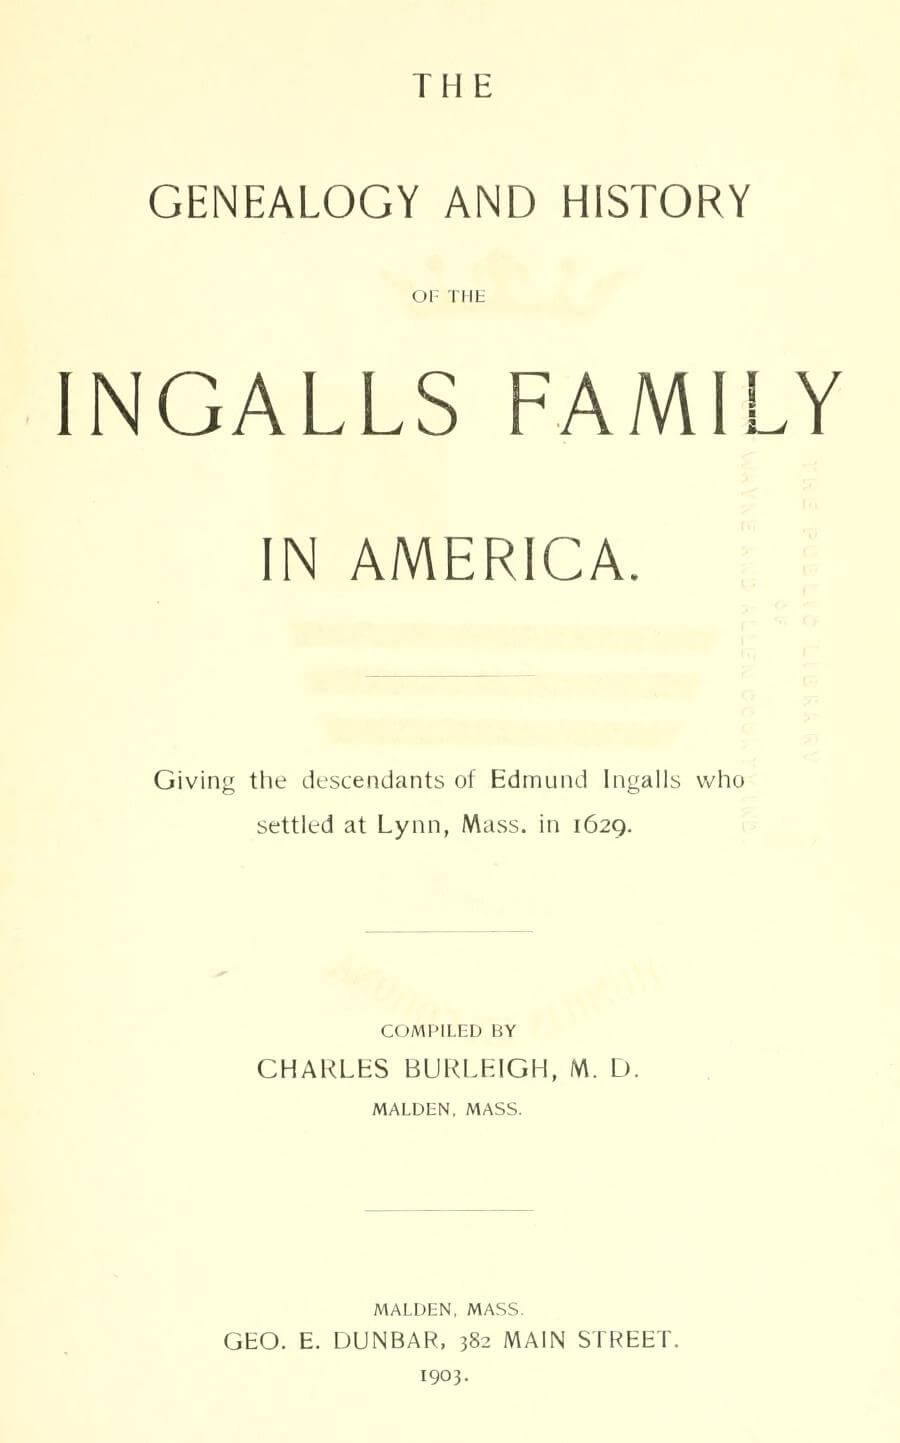 The genealogy and history of the Ingalls family in America 1